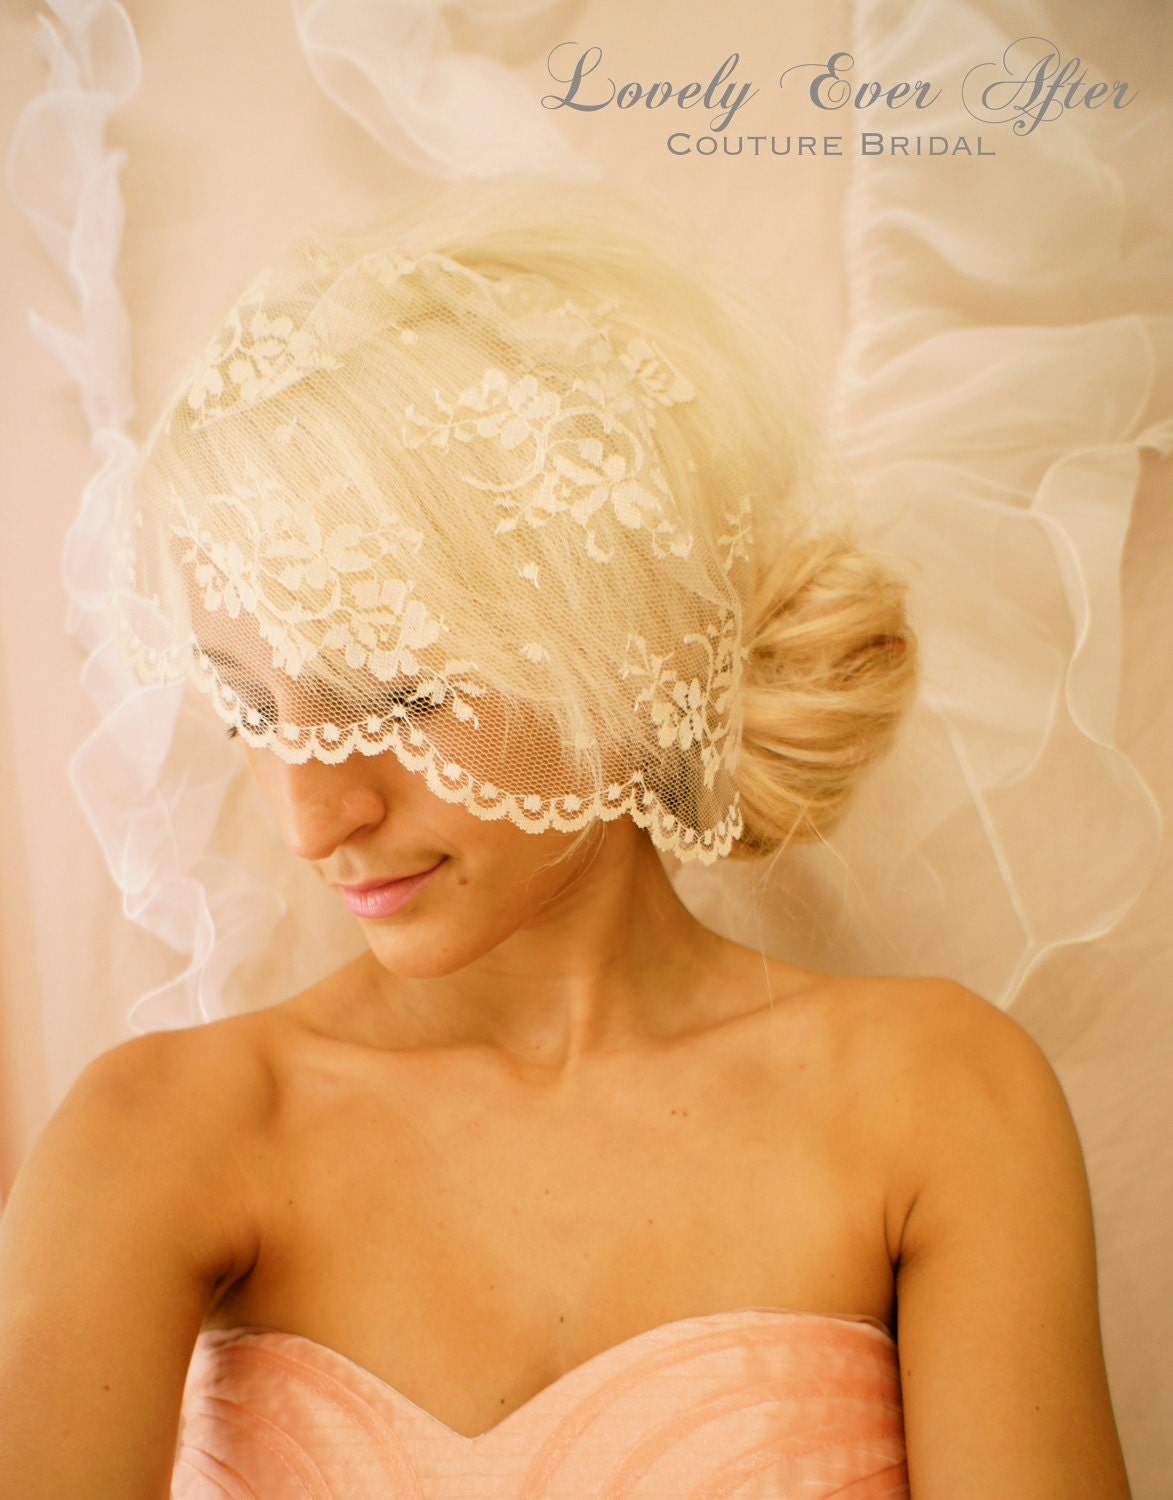 Lovely ever After Bridal Wedding Day Vintage Lace Birdcage Veil